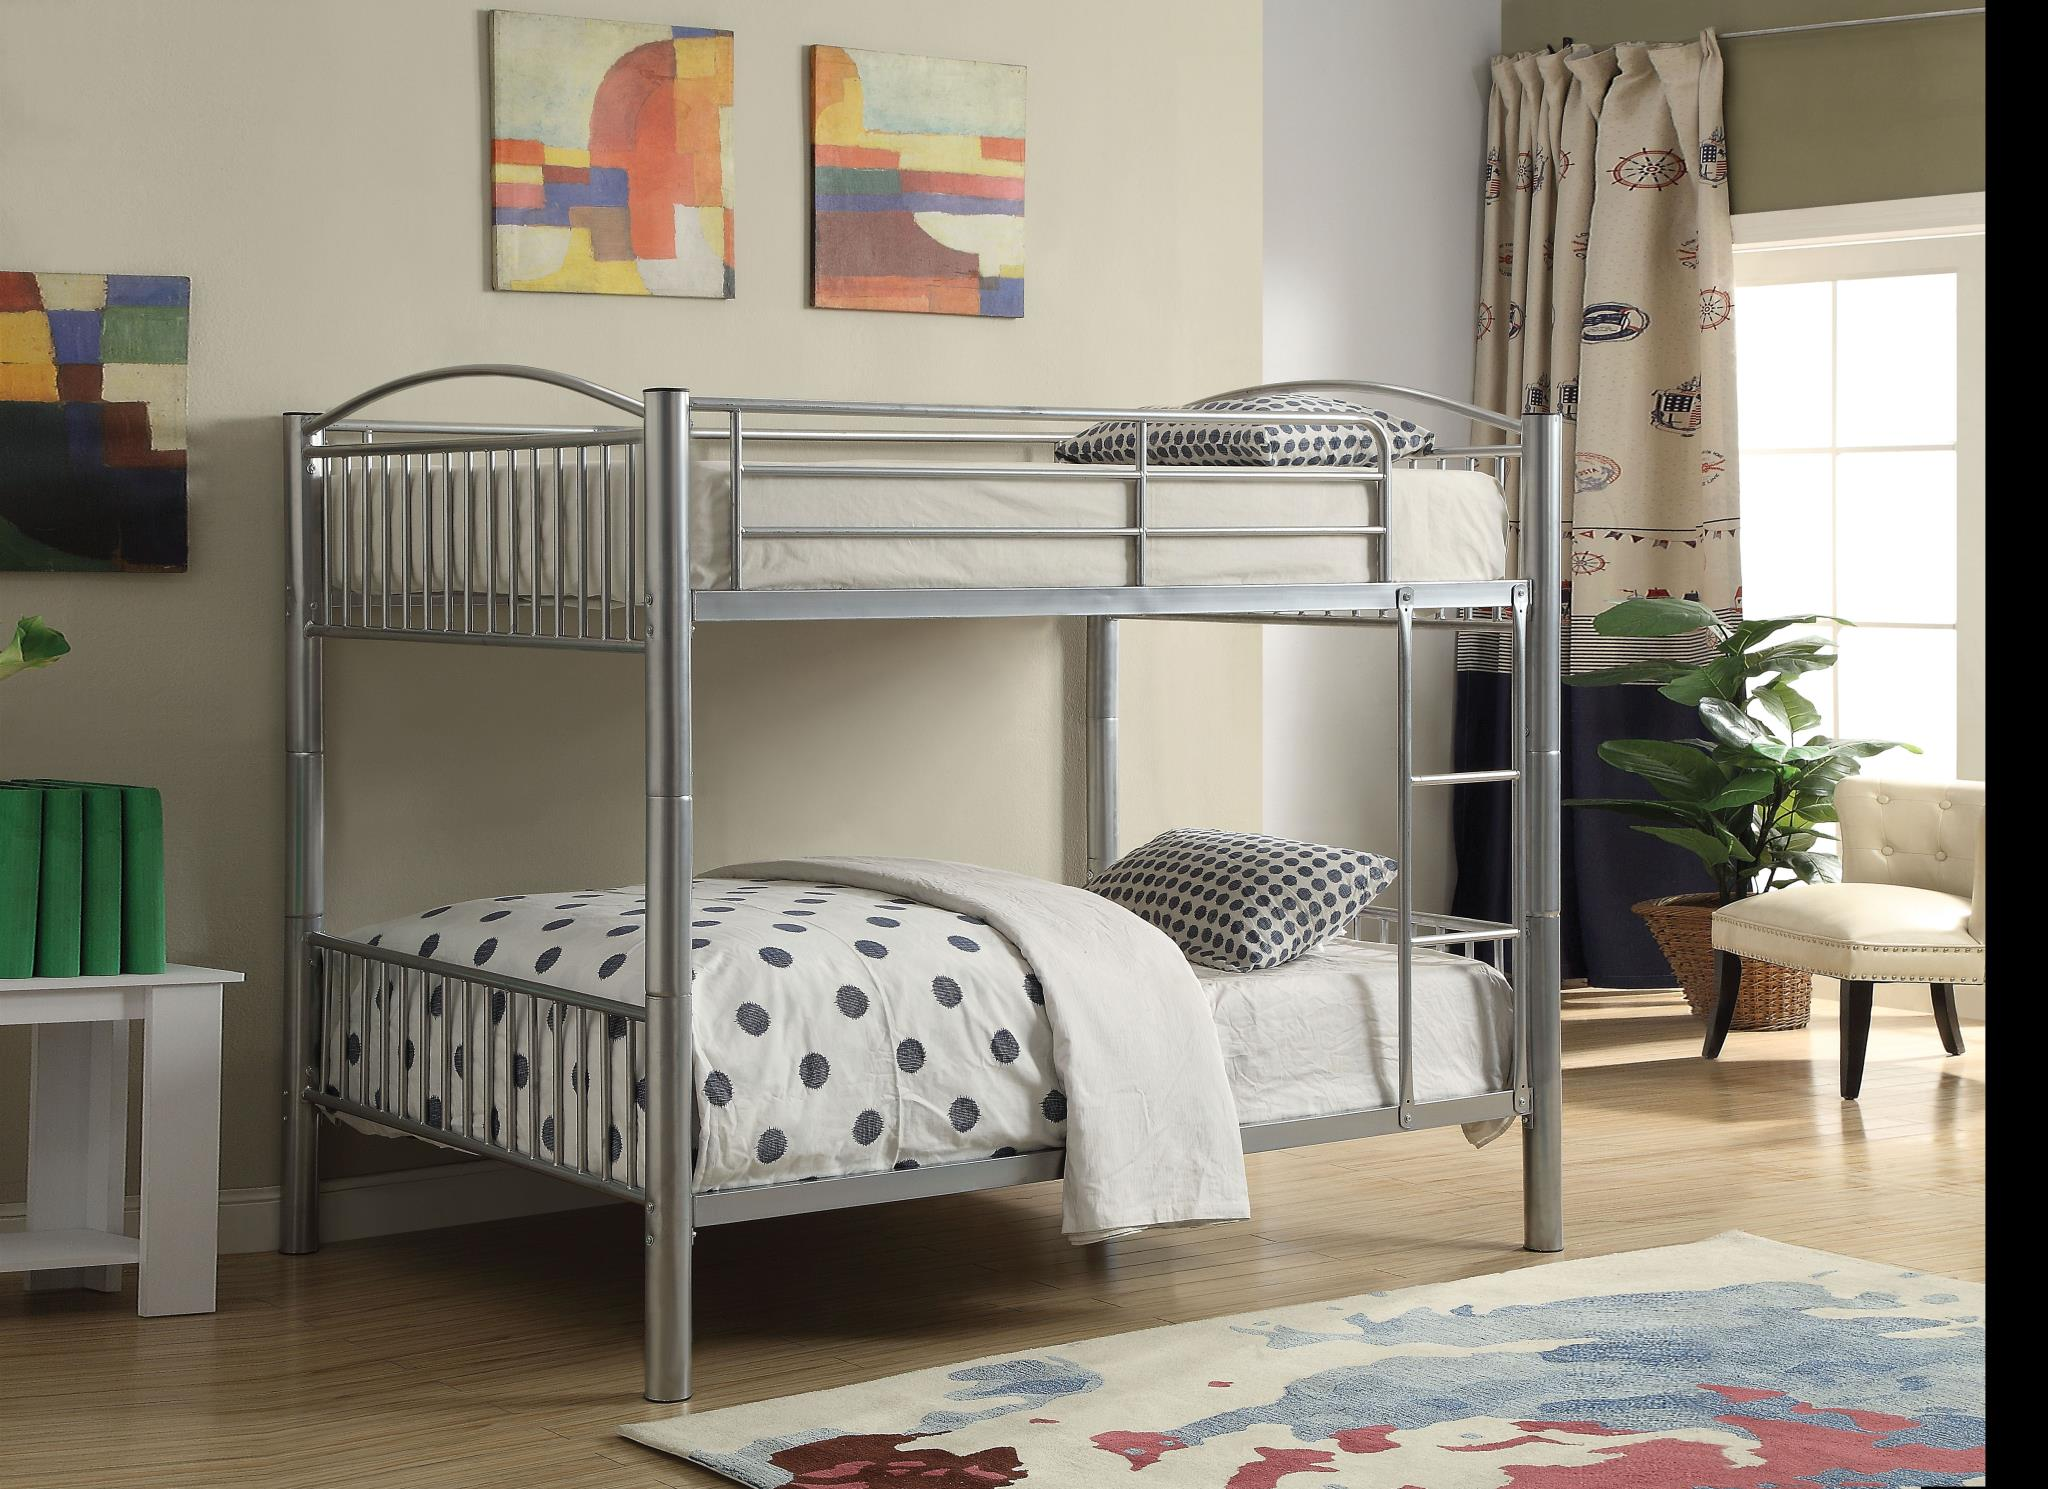 Silver Full/Full Bunk Bed